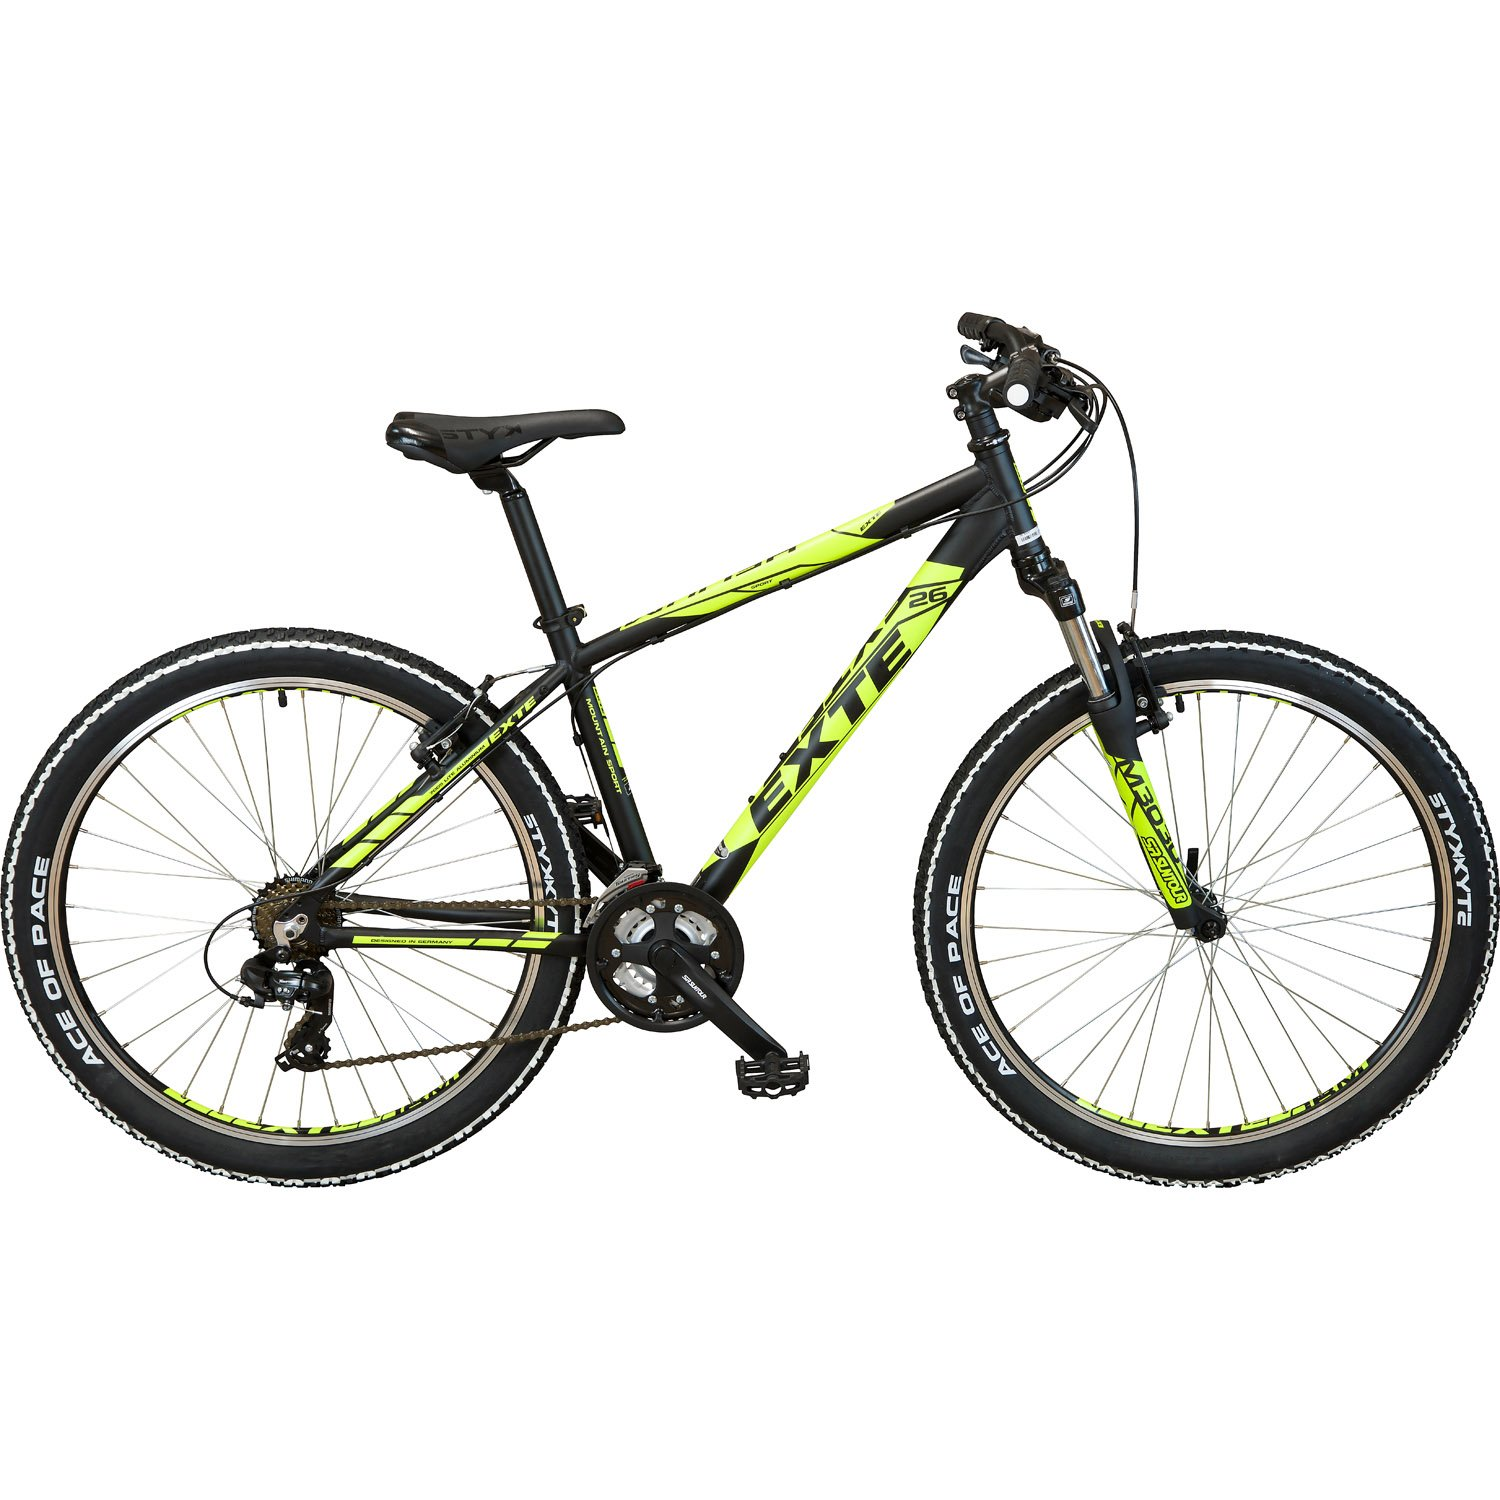 exte helium mountainbike 26 zoll online shop zweirad stadler. Black Bedroom Furniture Sets. Home Design Ideas